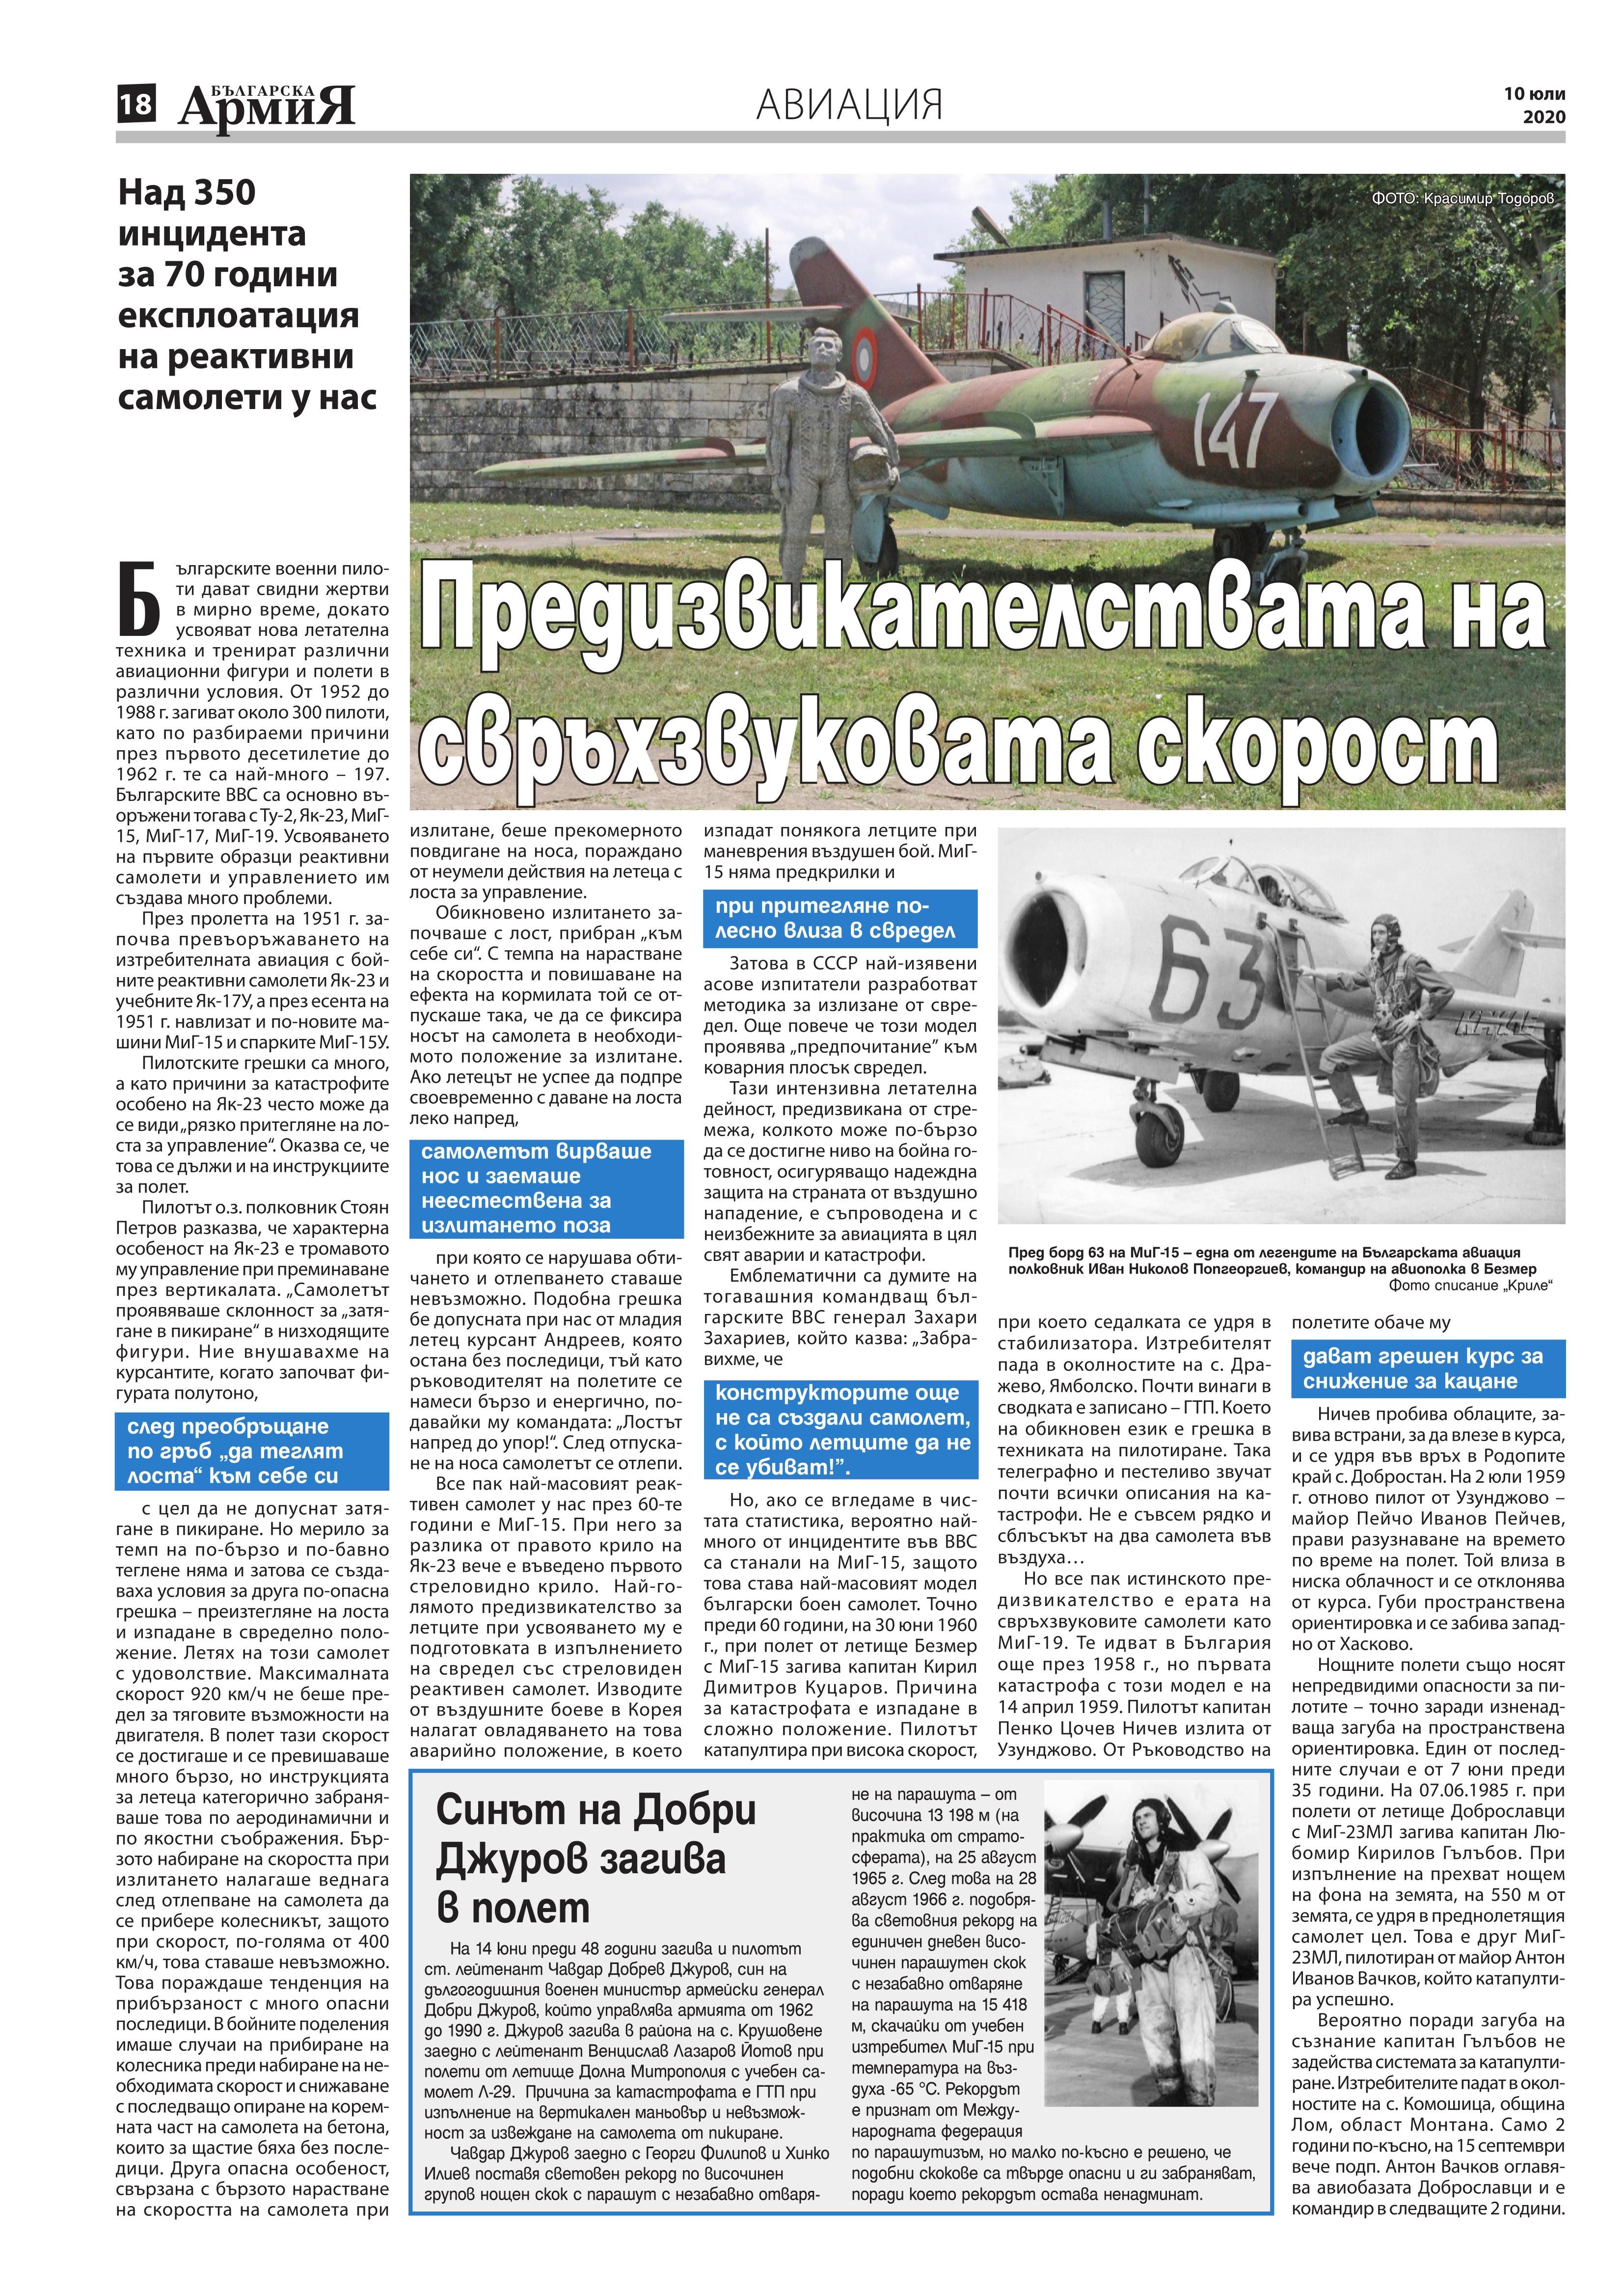 https://www.armymedia.bg/wp-content/uploads/2015/06/18.page1_-146.jpg